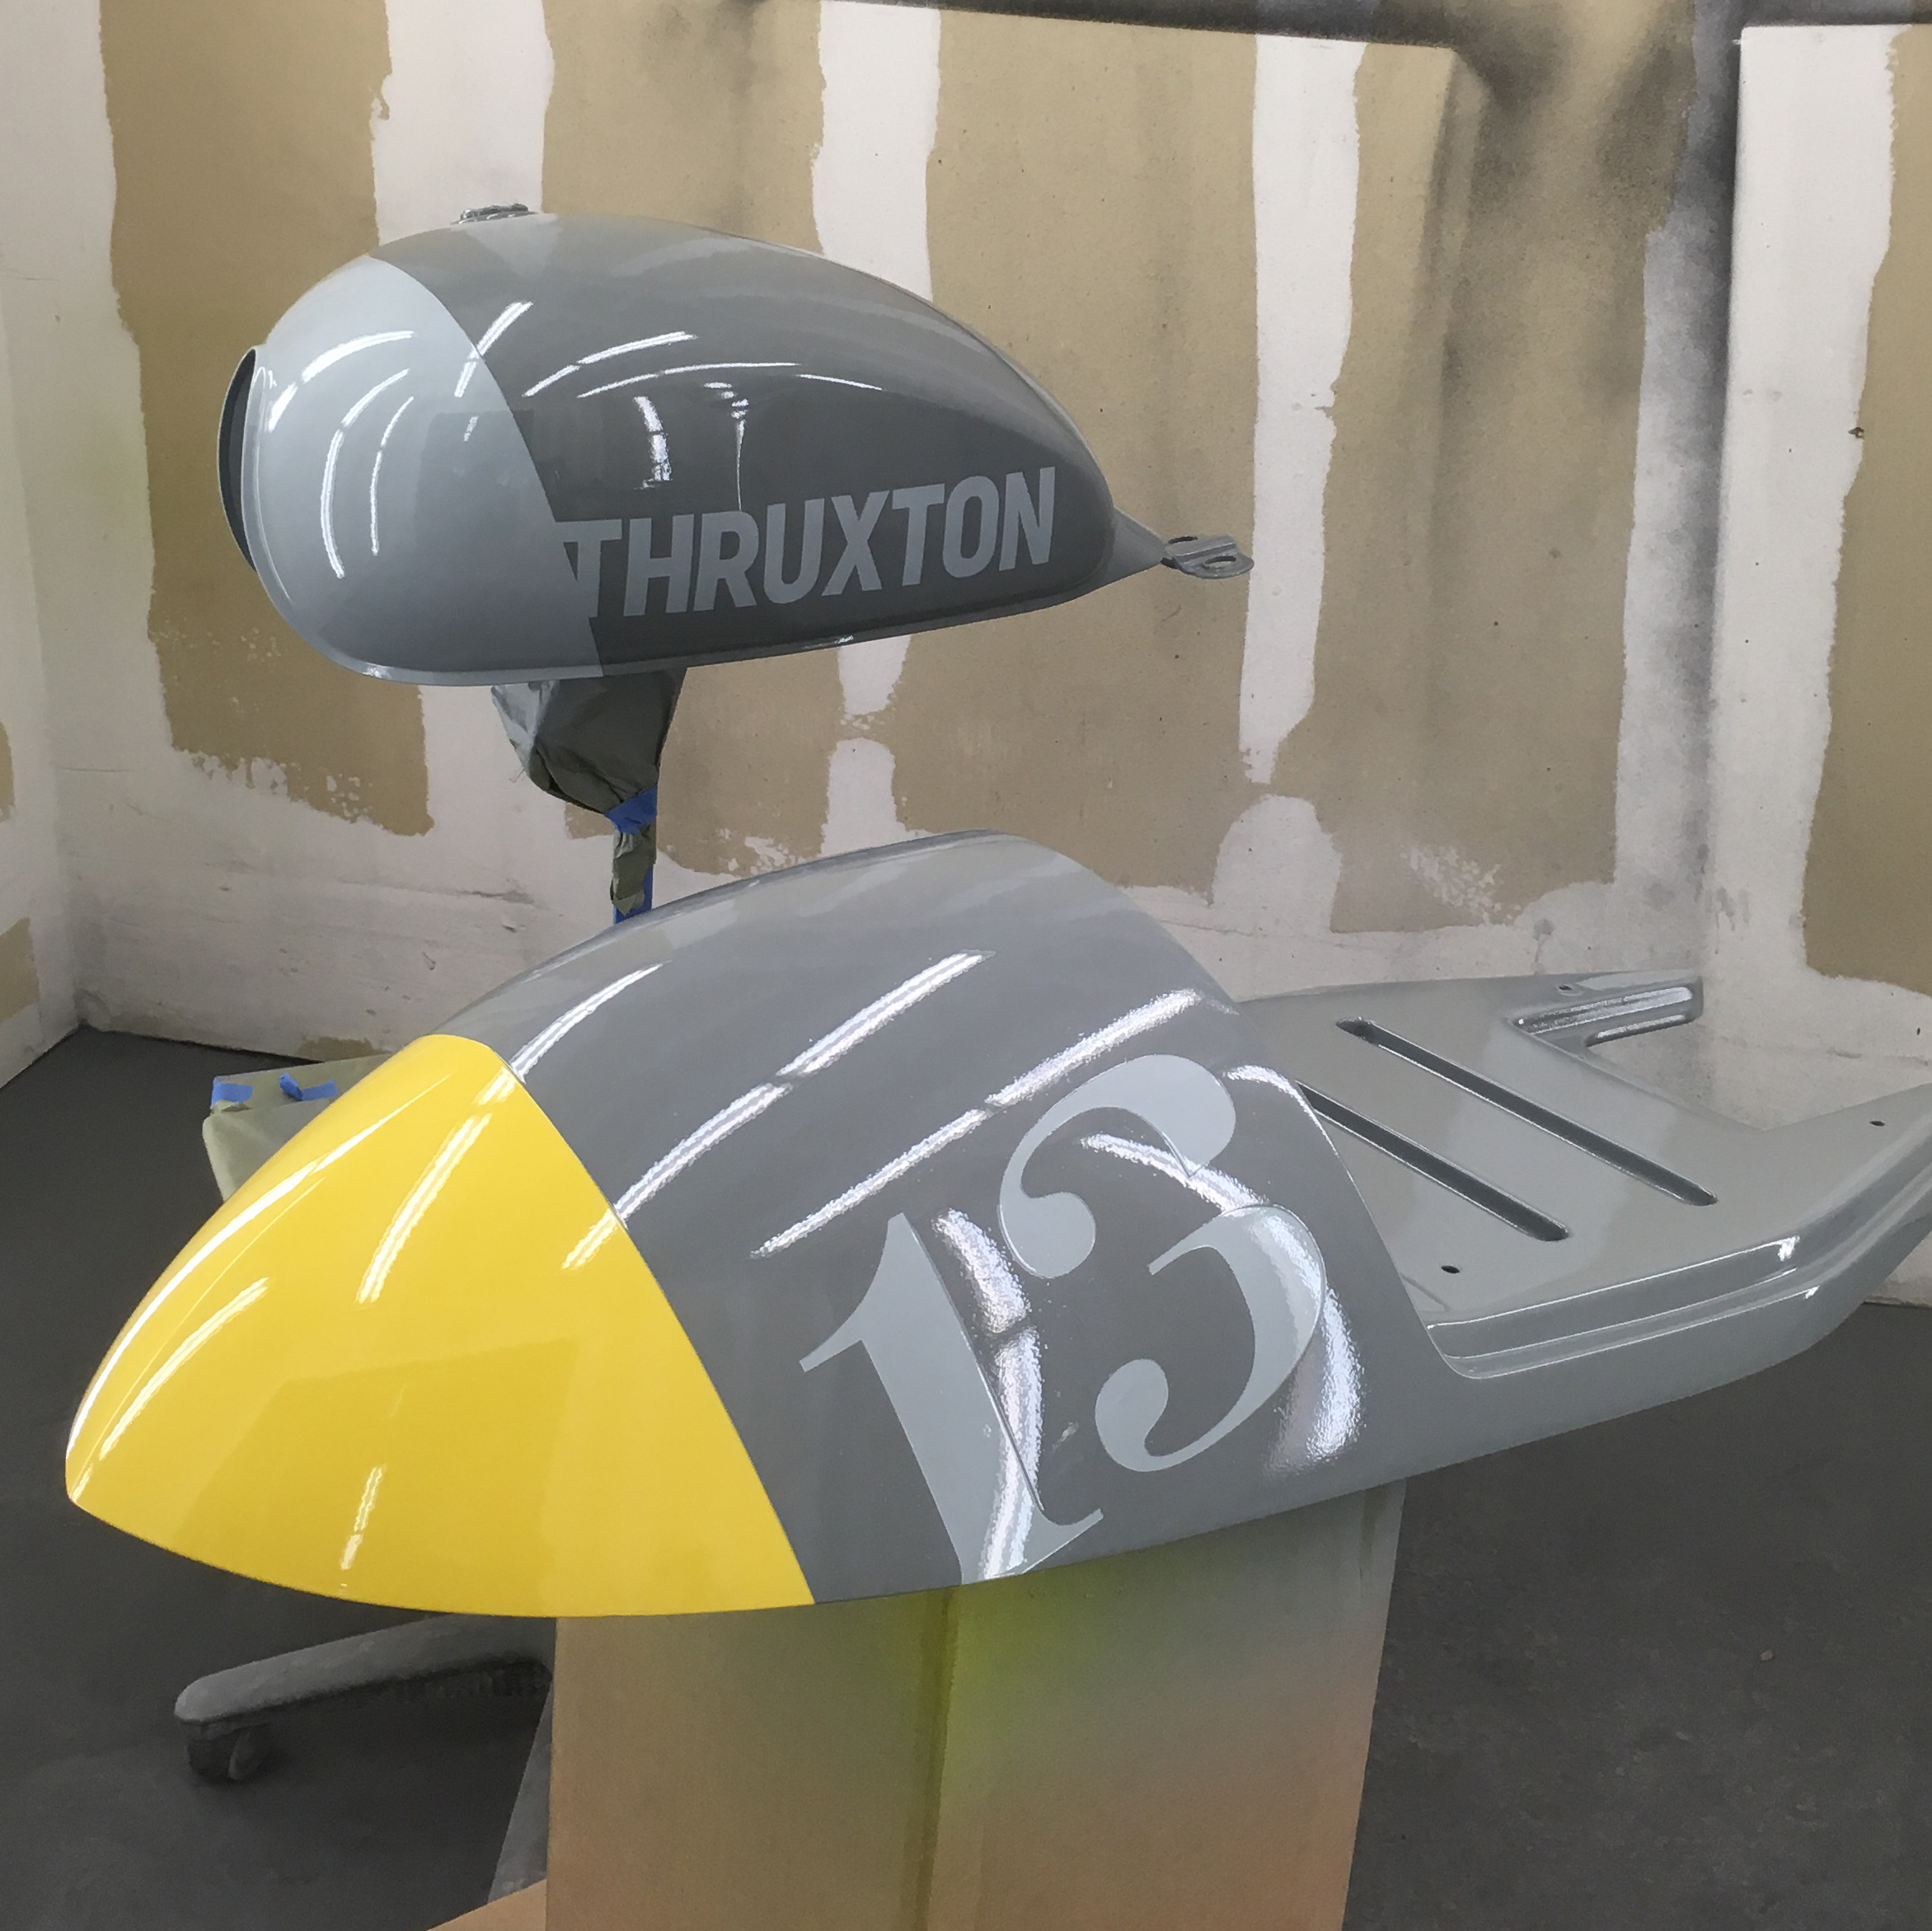 ThruxtonV2Paint_01.jpg